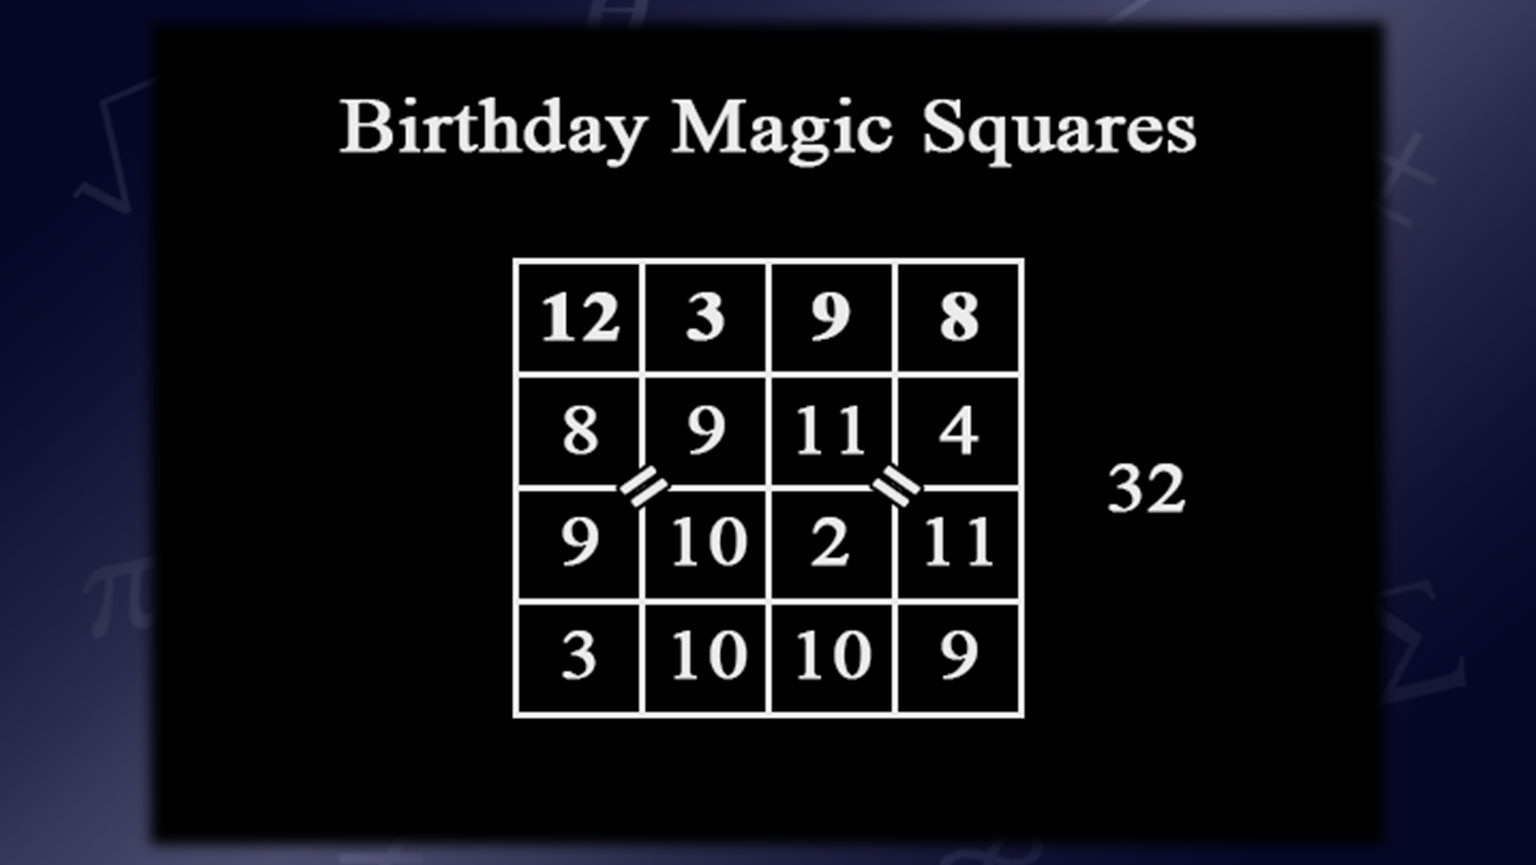 The Joy of Mathematical Magic